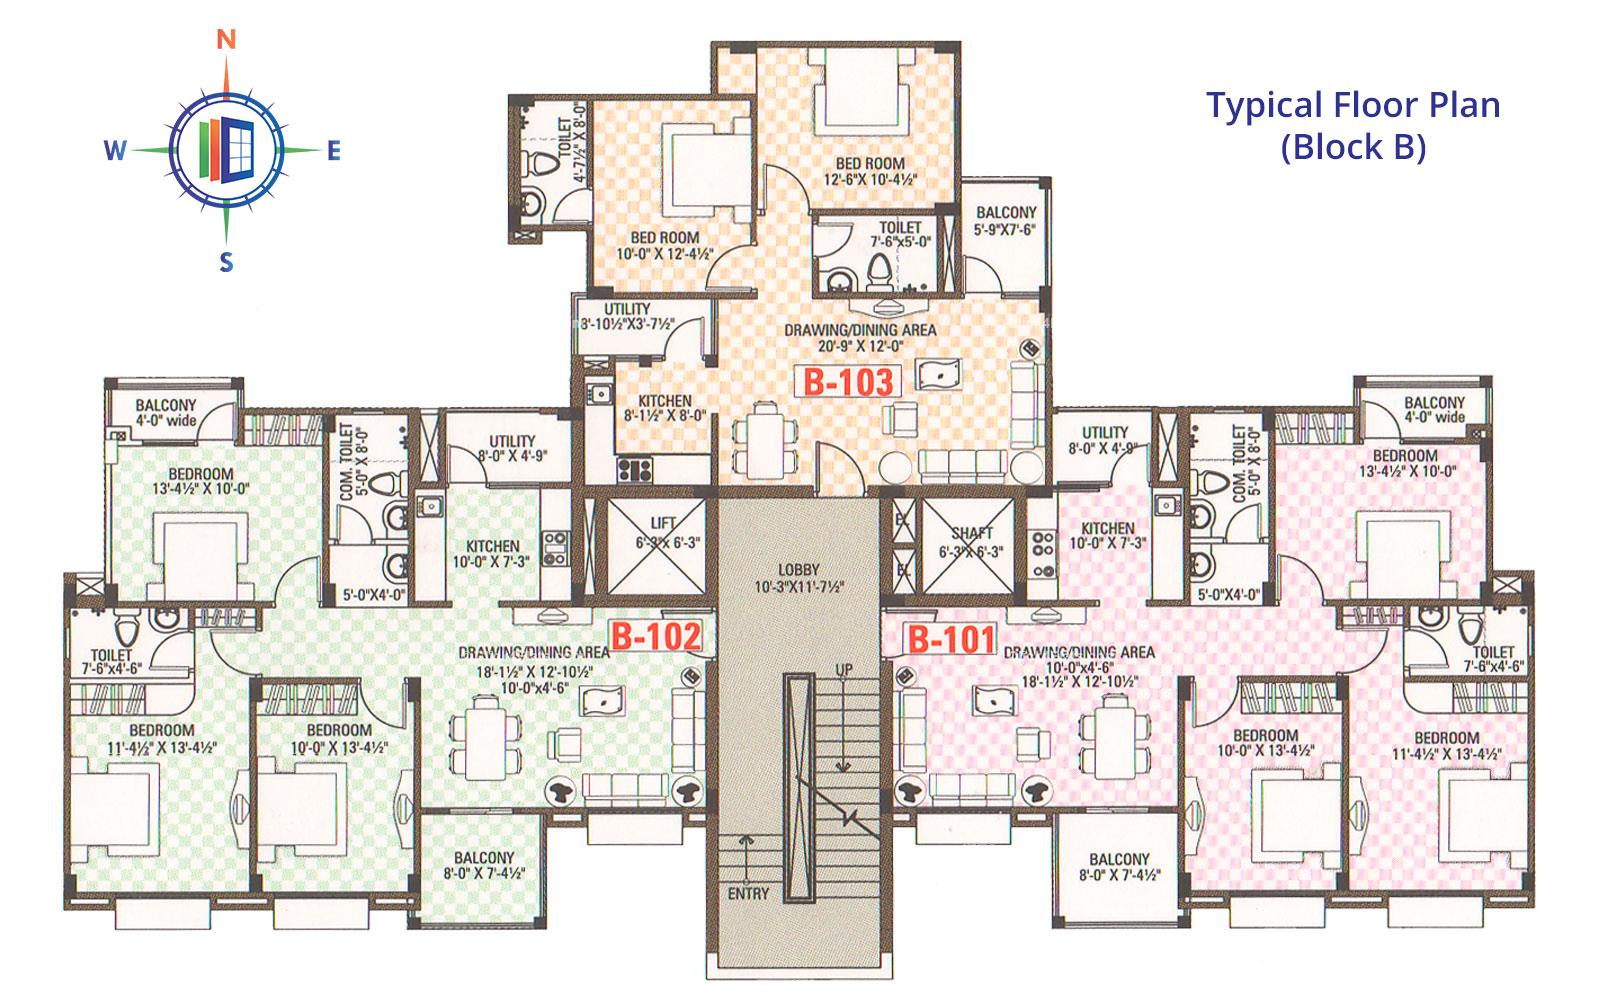 Celebrations Typical Floor Plan (B)